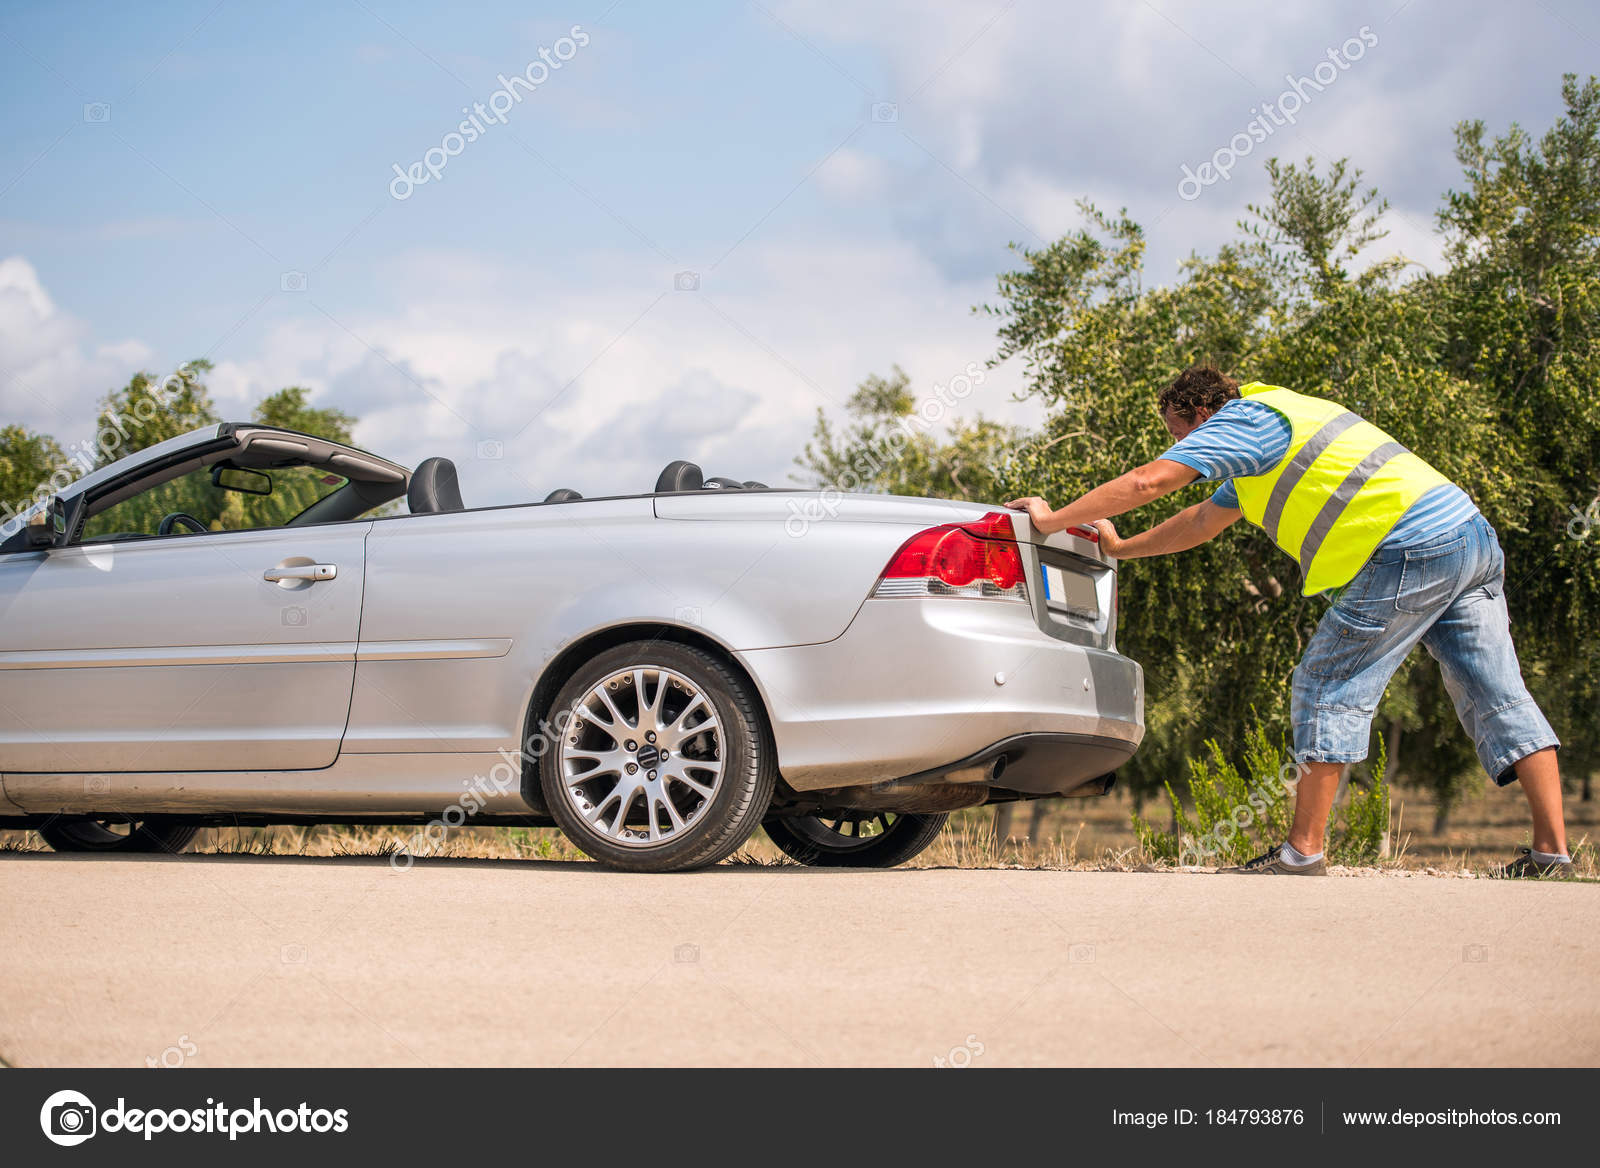 Car Broke Down >> The Car Broke Down On The Road The Man Pushes The Car